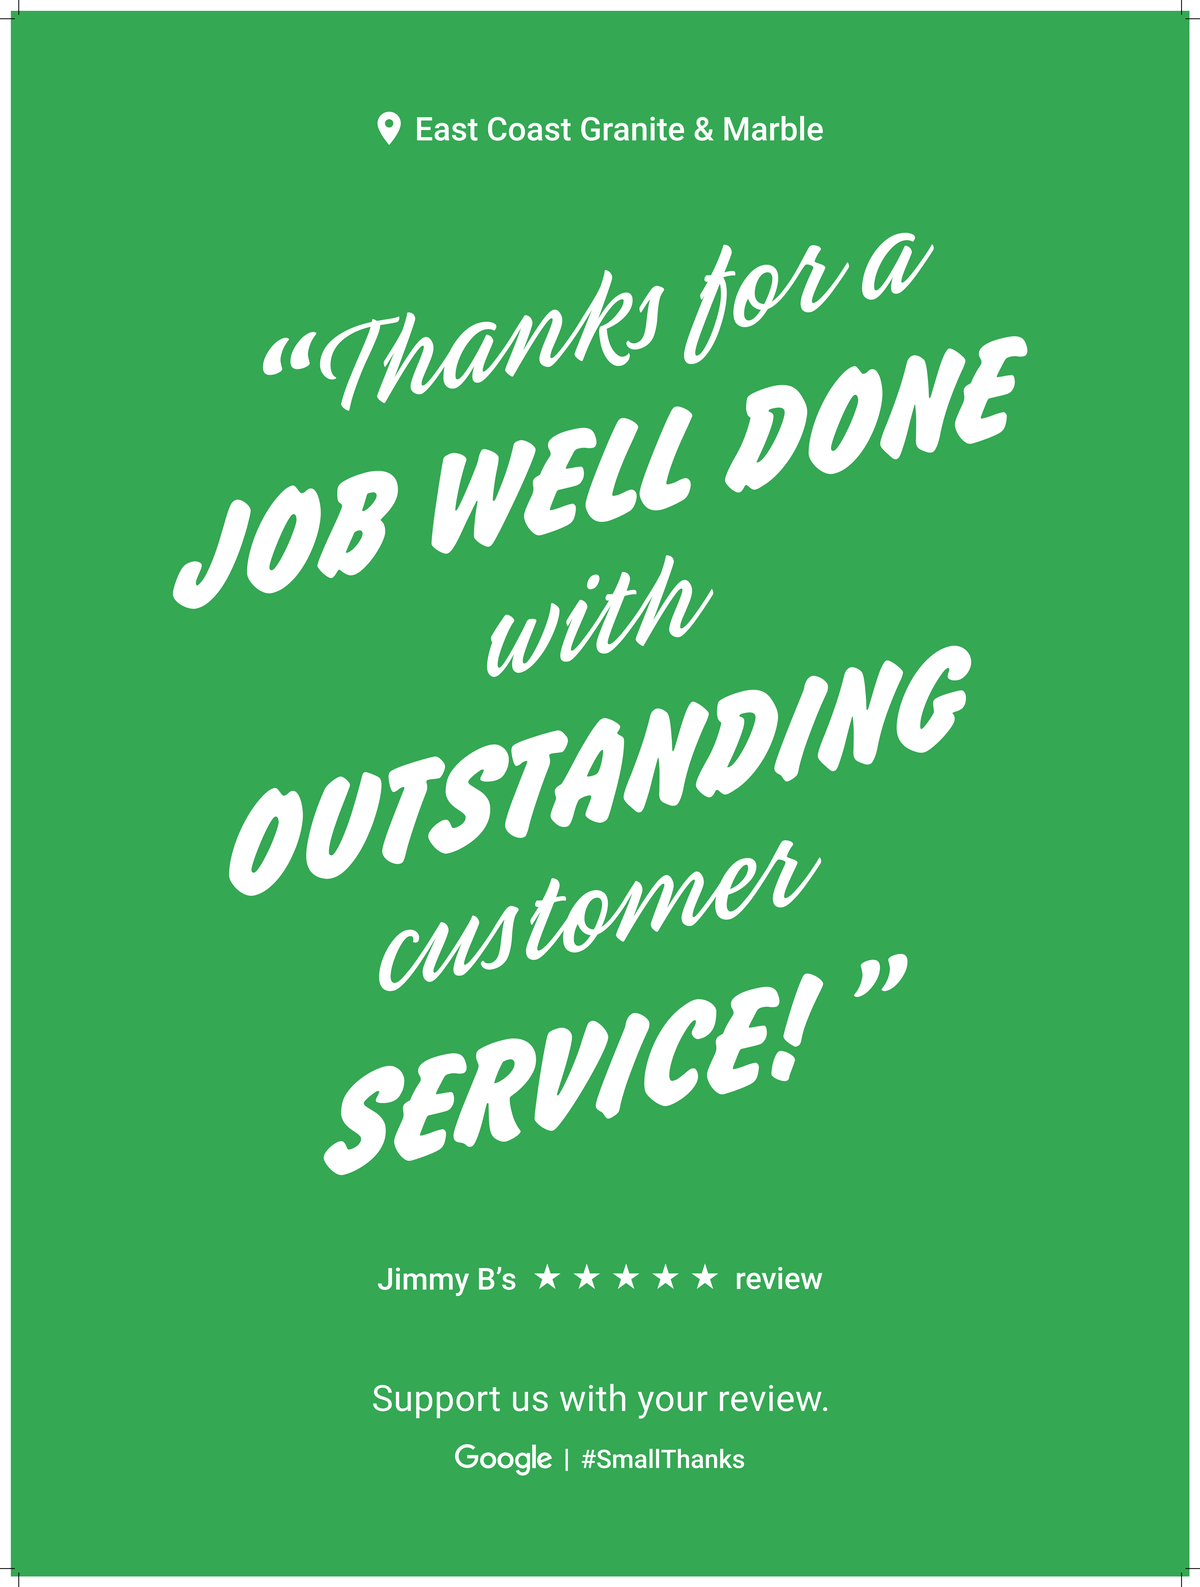 Google Review Raleigh from Jimmy B. - Great to work with and they do Excellent Work!